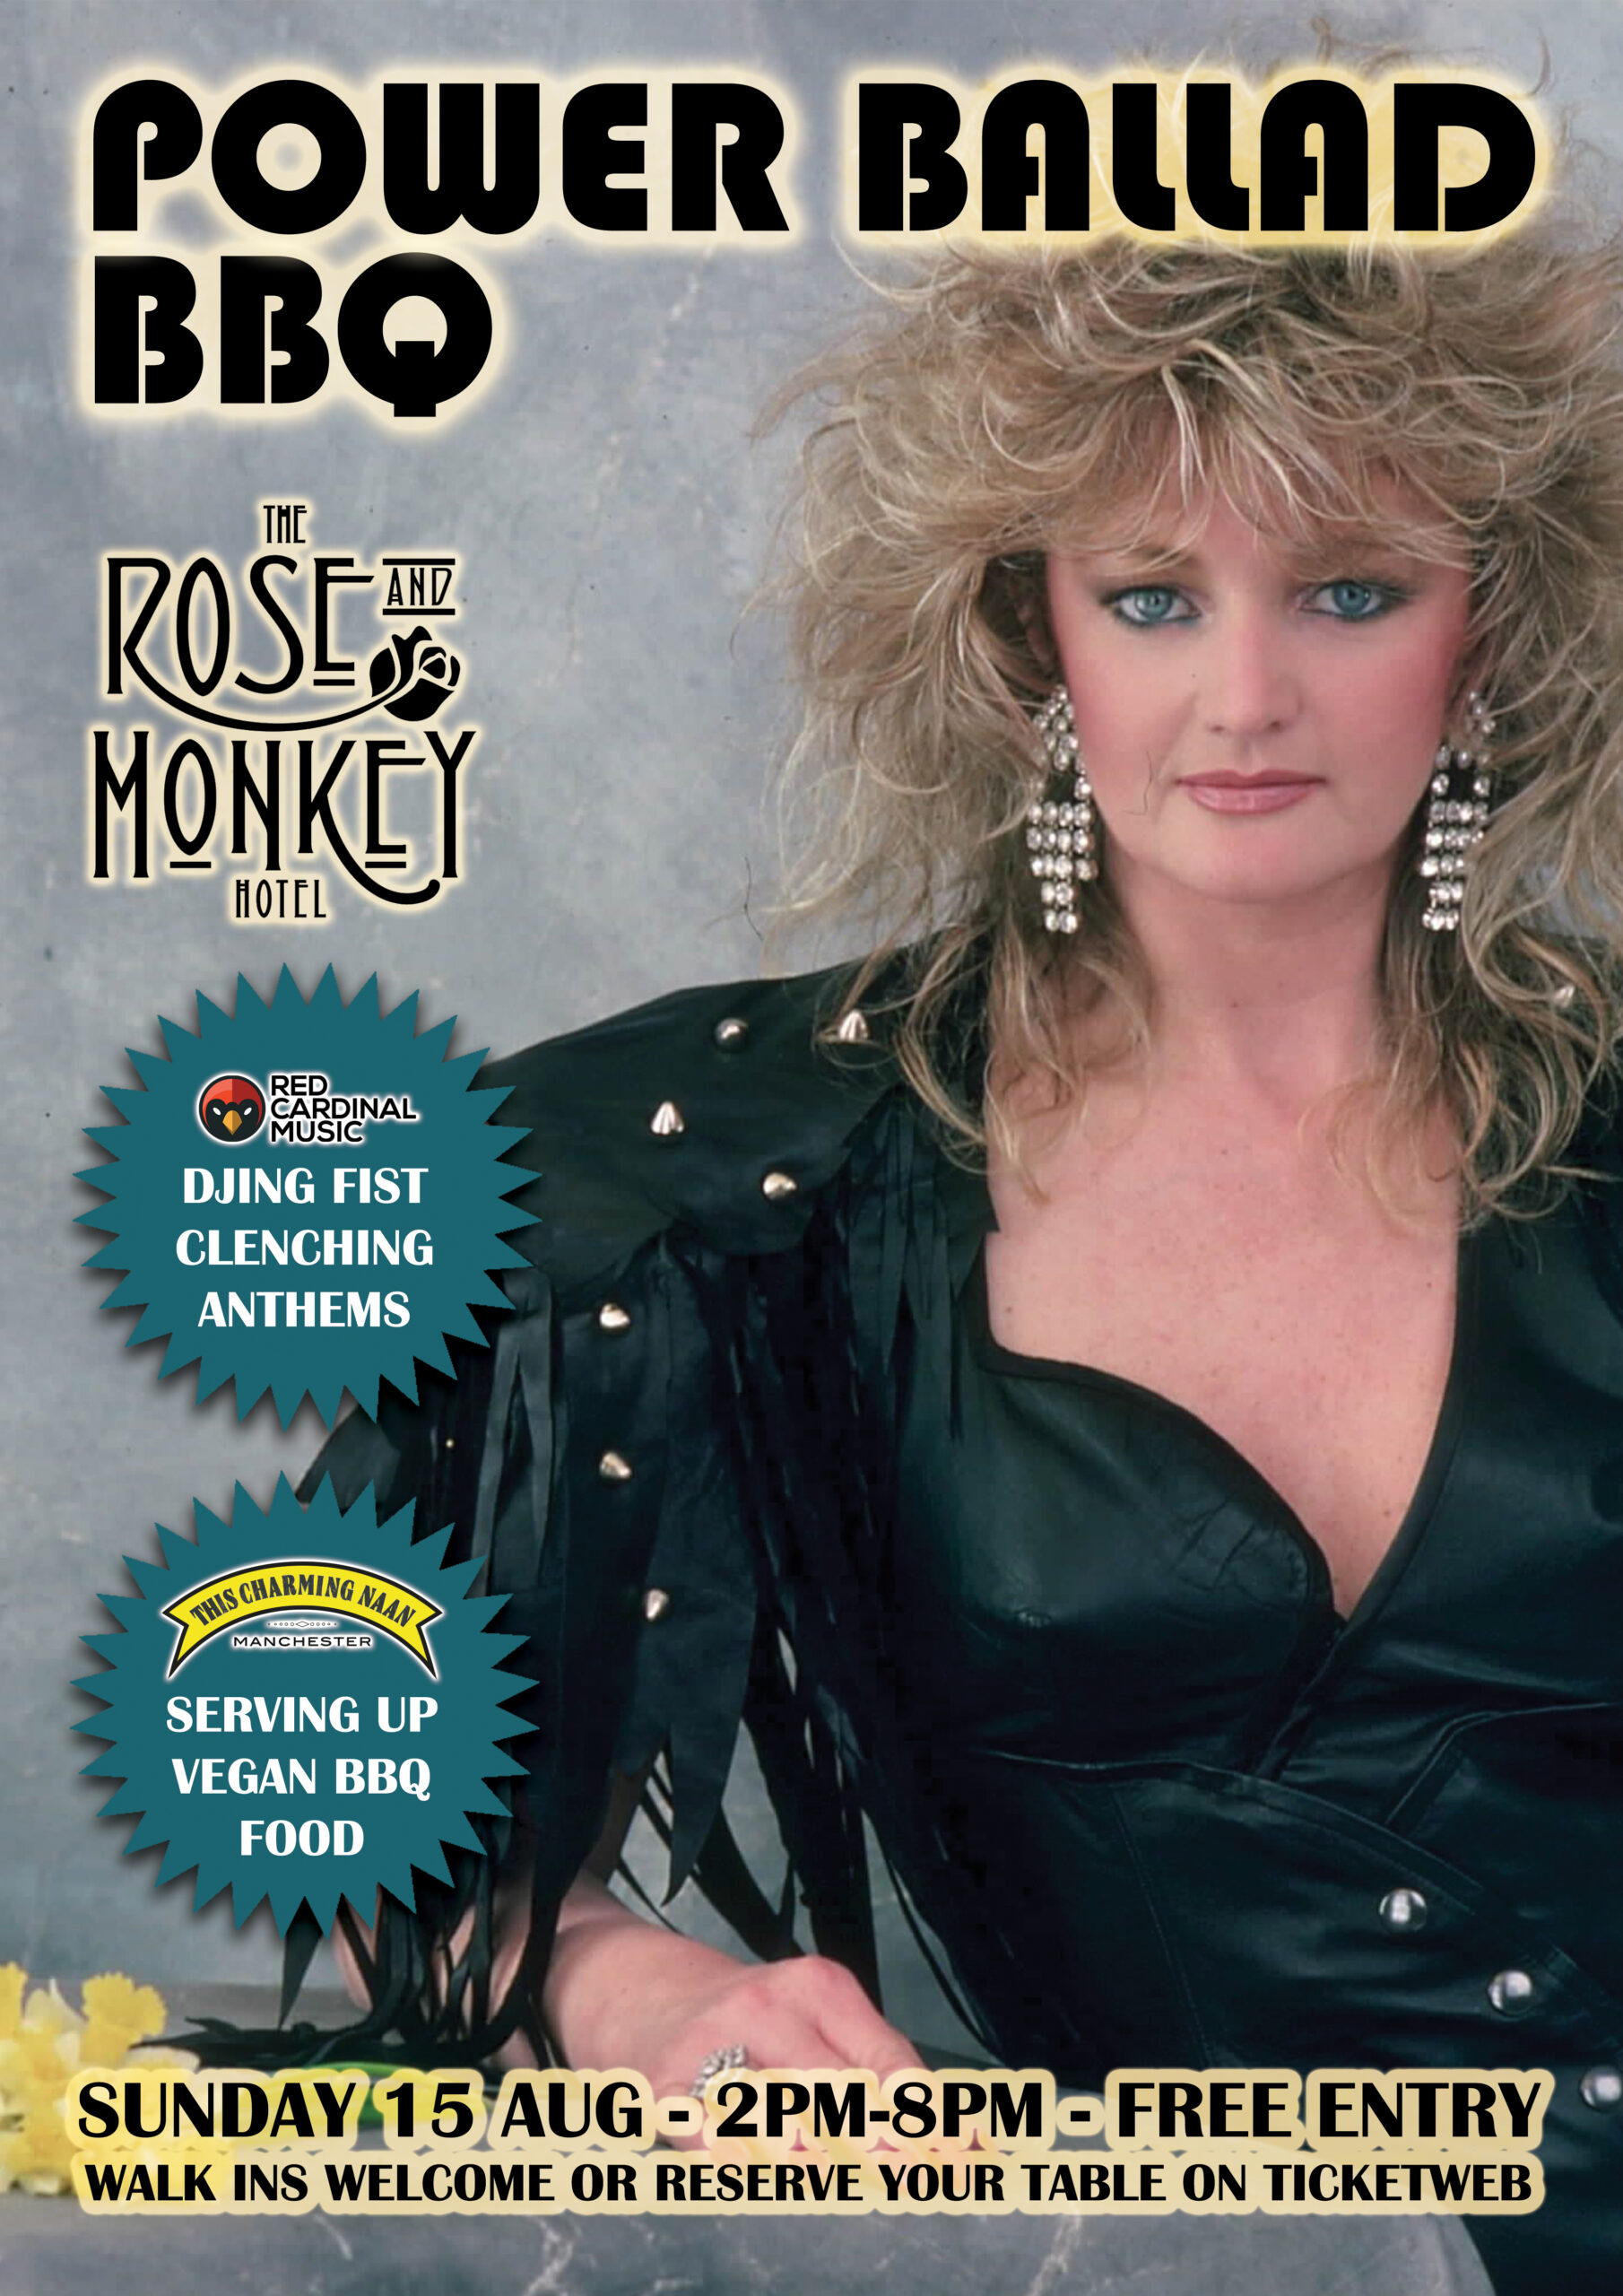 Power Ballad BBQ - Rose & Monkey - Aug 21 - Poster - This Charming Naan